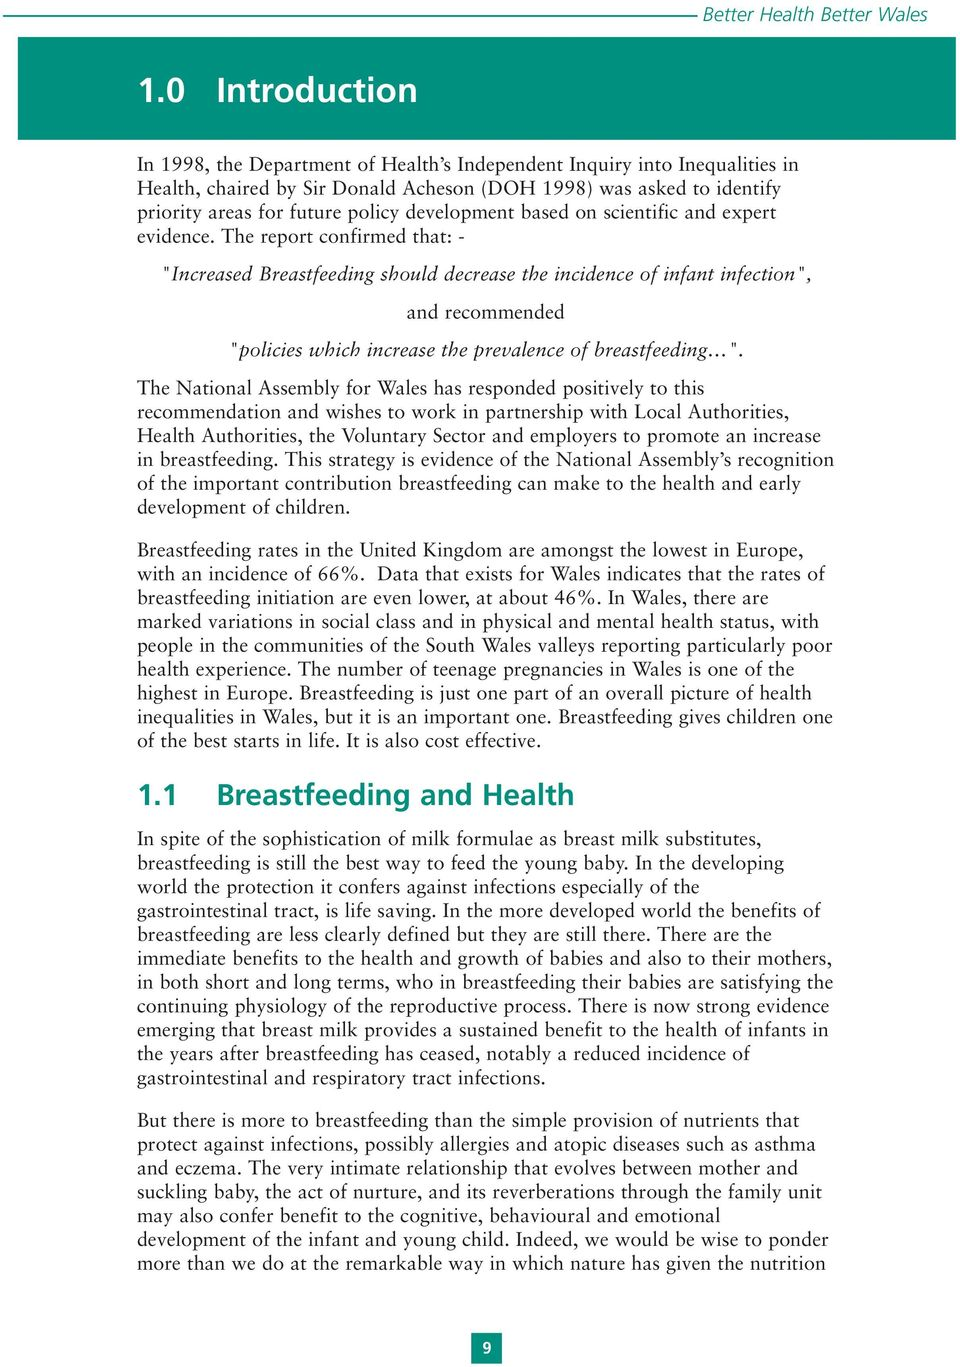 "The report confirmed that: - ""Increased Breastfeeding should decrease the incidence of infant infection"", and recommended ""policies which increase the prevalence of breastfeeding ""."